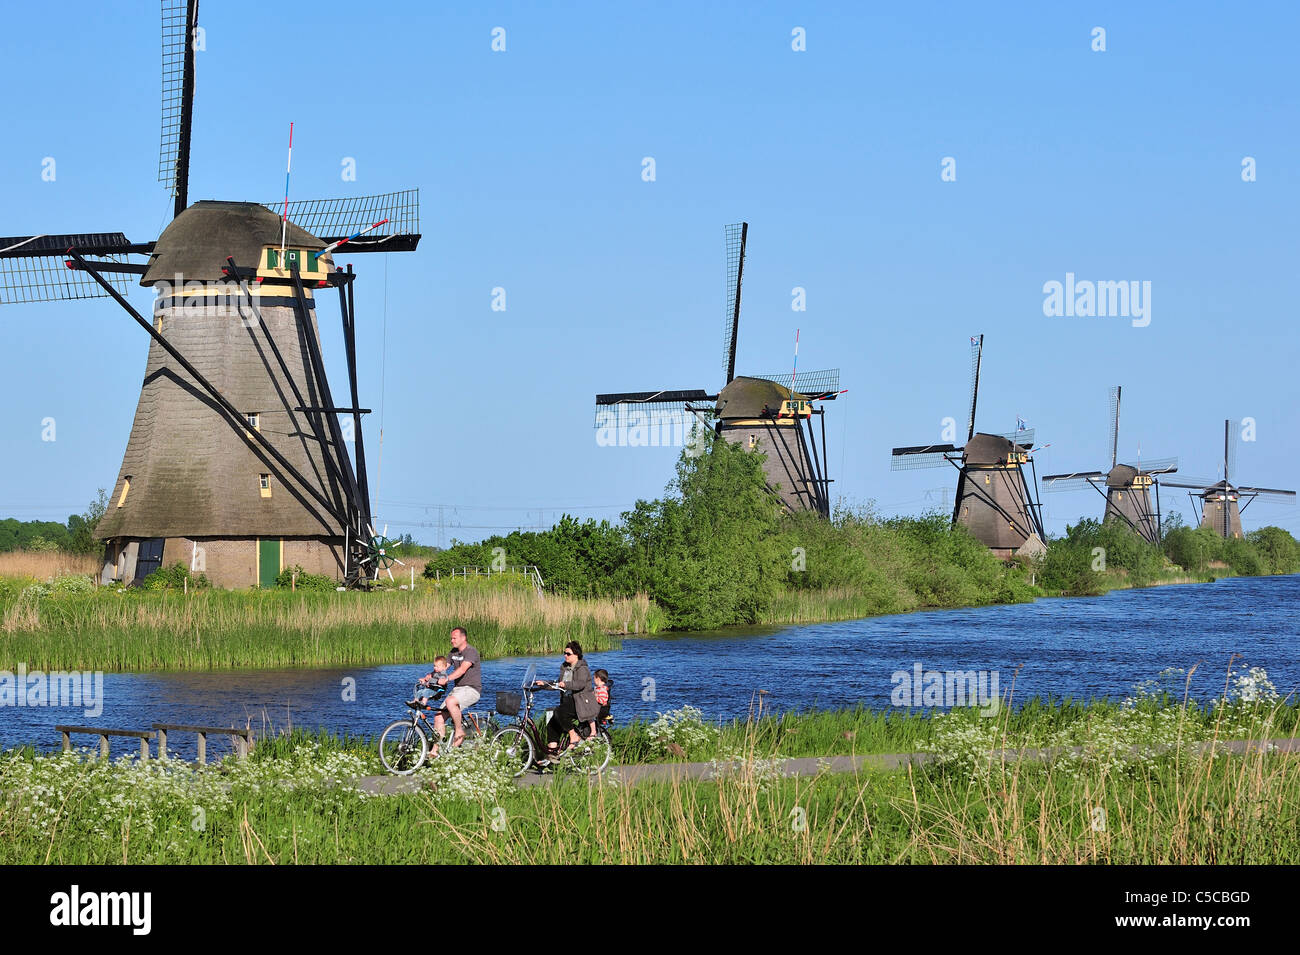 Row of thatched polder windmills along canal at Kinderdijk, a UNESCO World Heritage Site at South Holland, the Netherlands - Stock Image